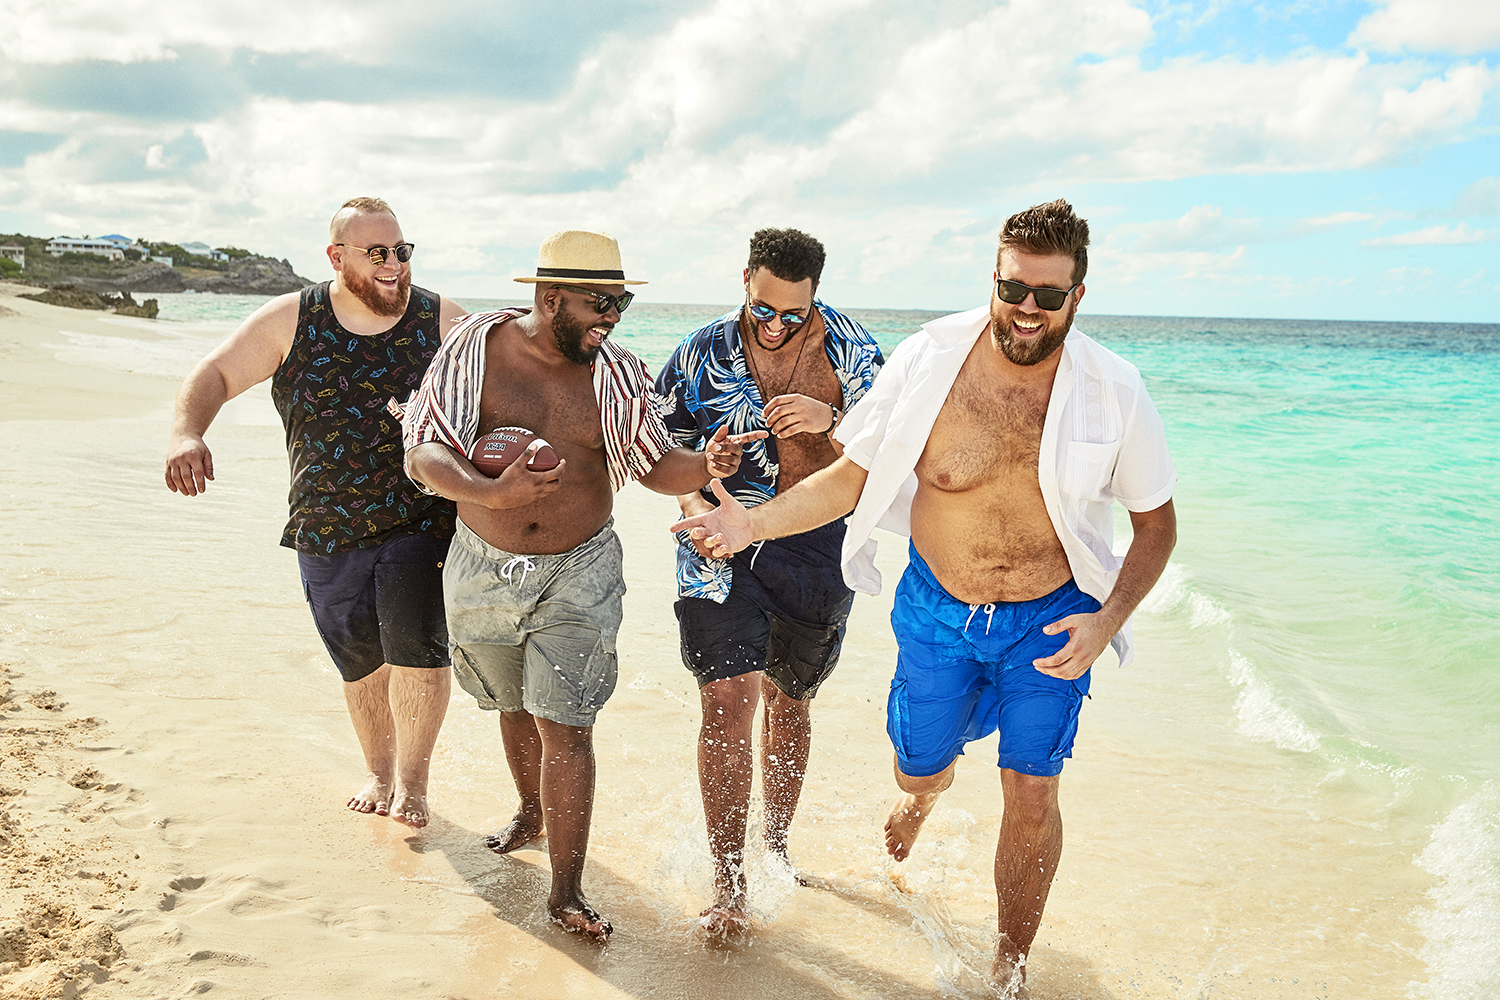 The campaign is also aimed at improving body positivity in men.